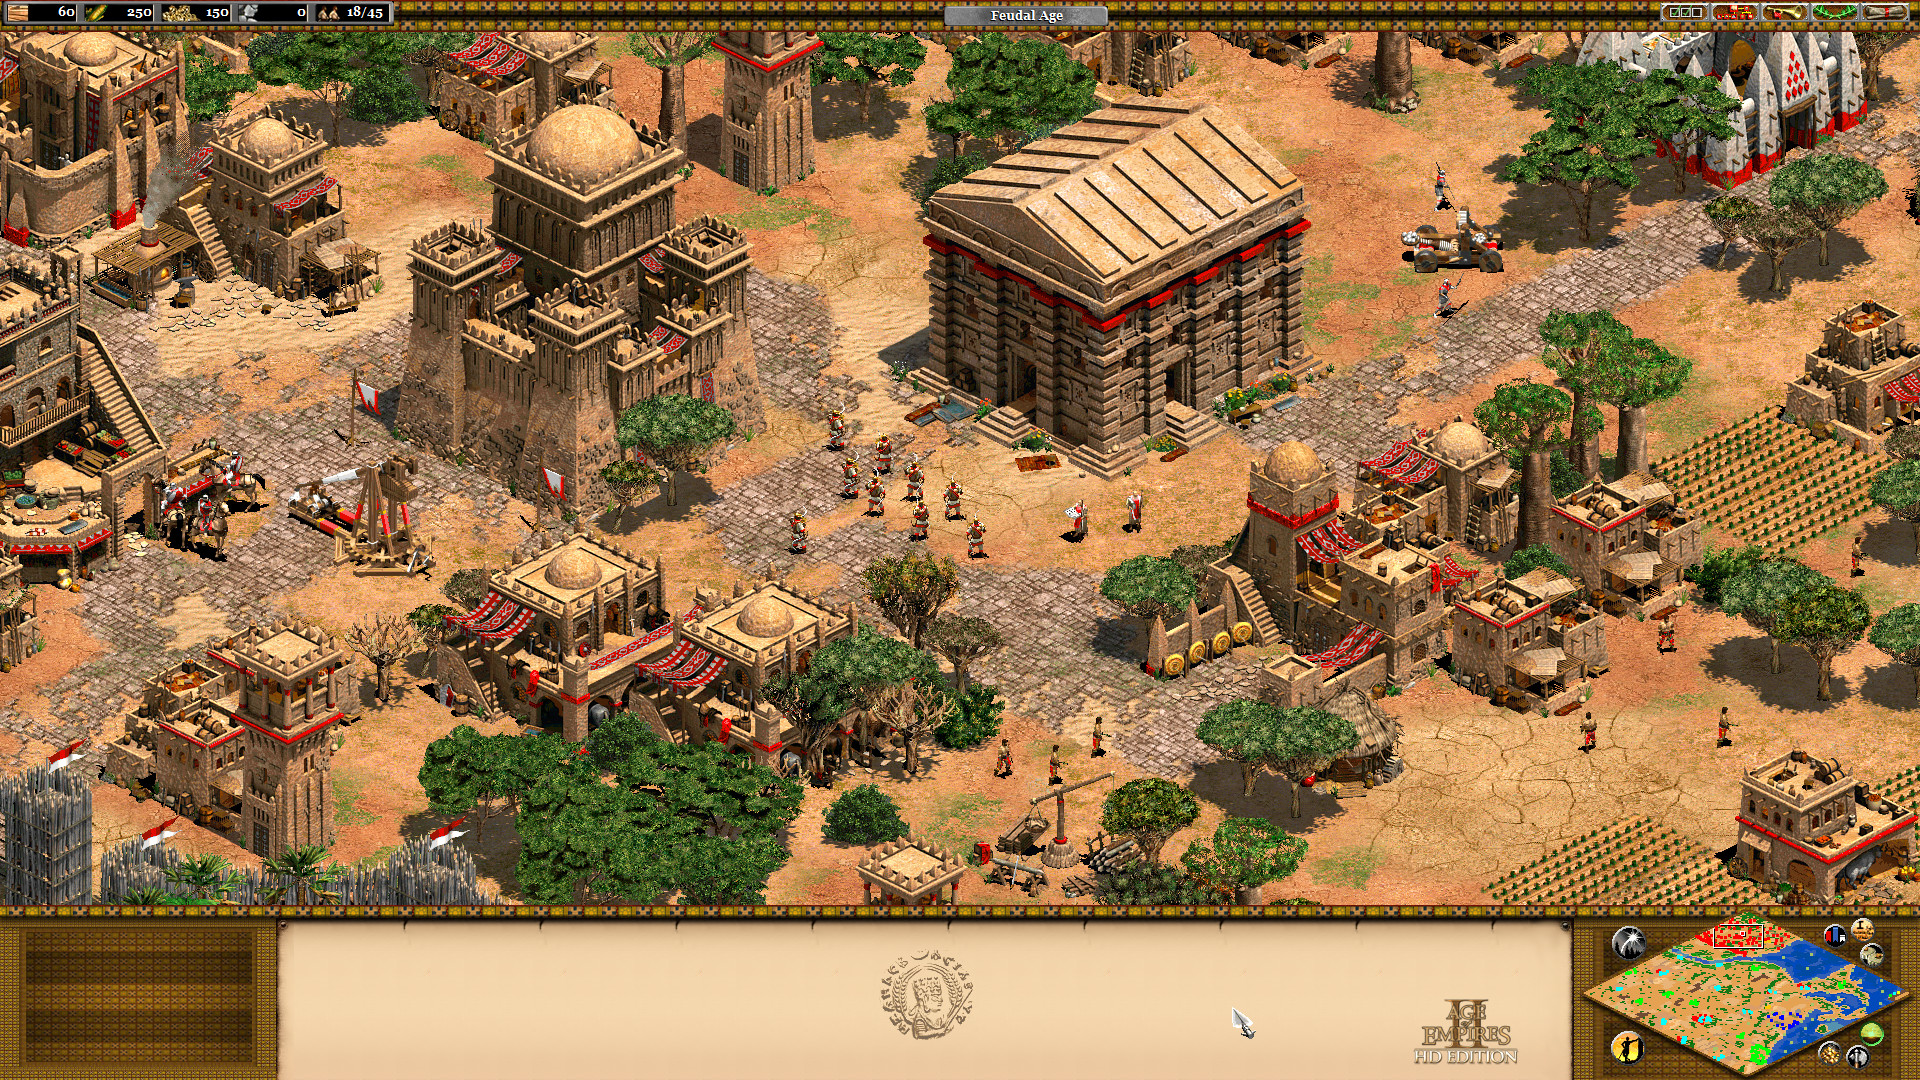 ocean of games age of empires 3 product key